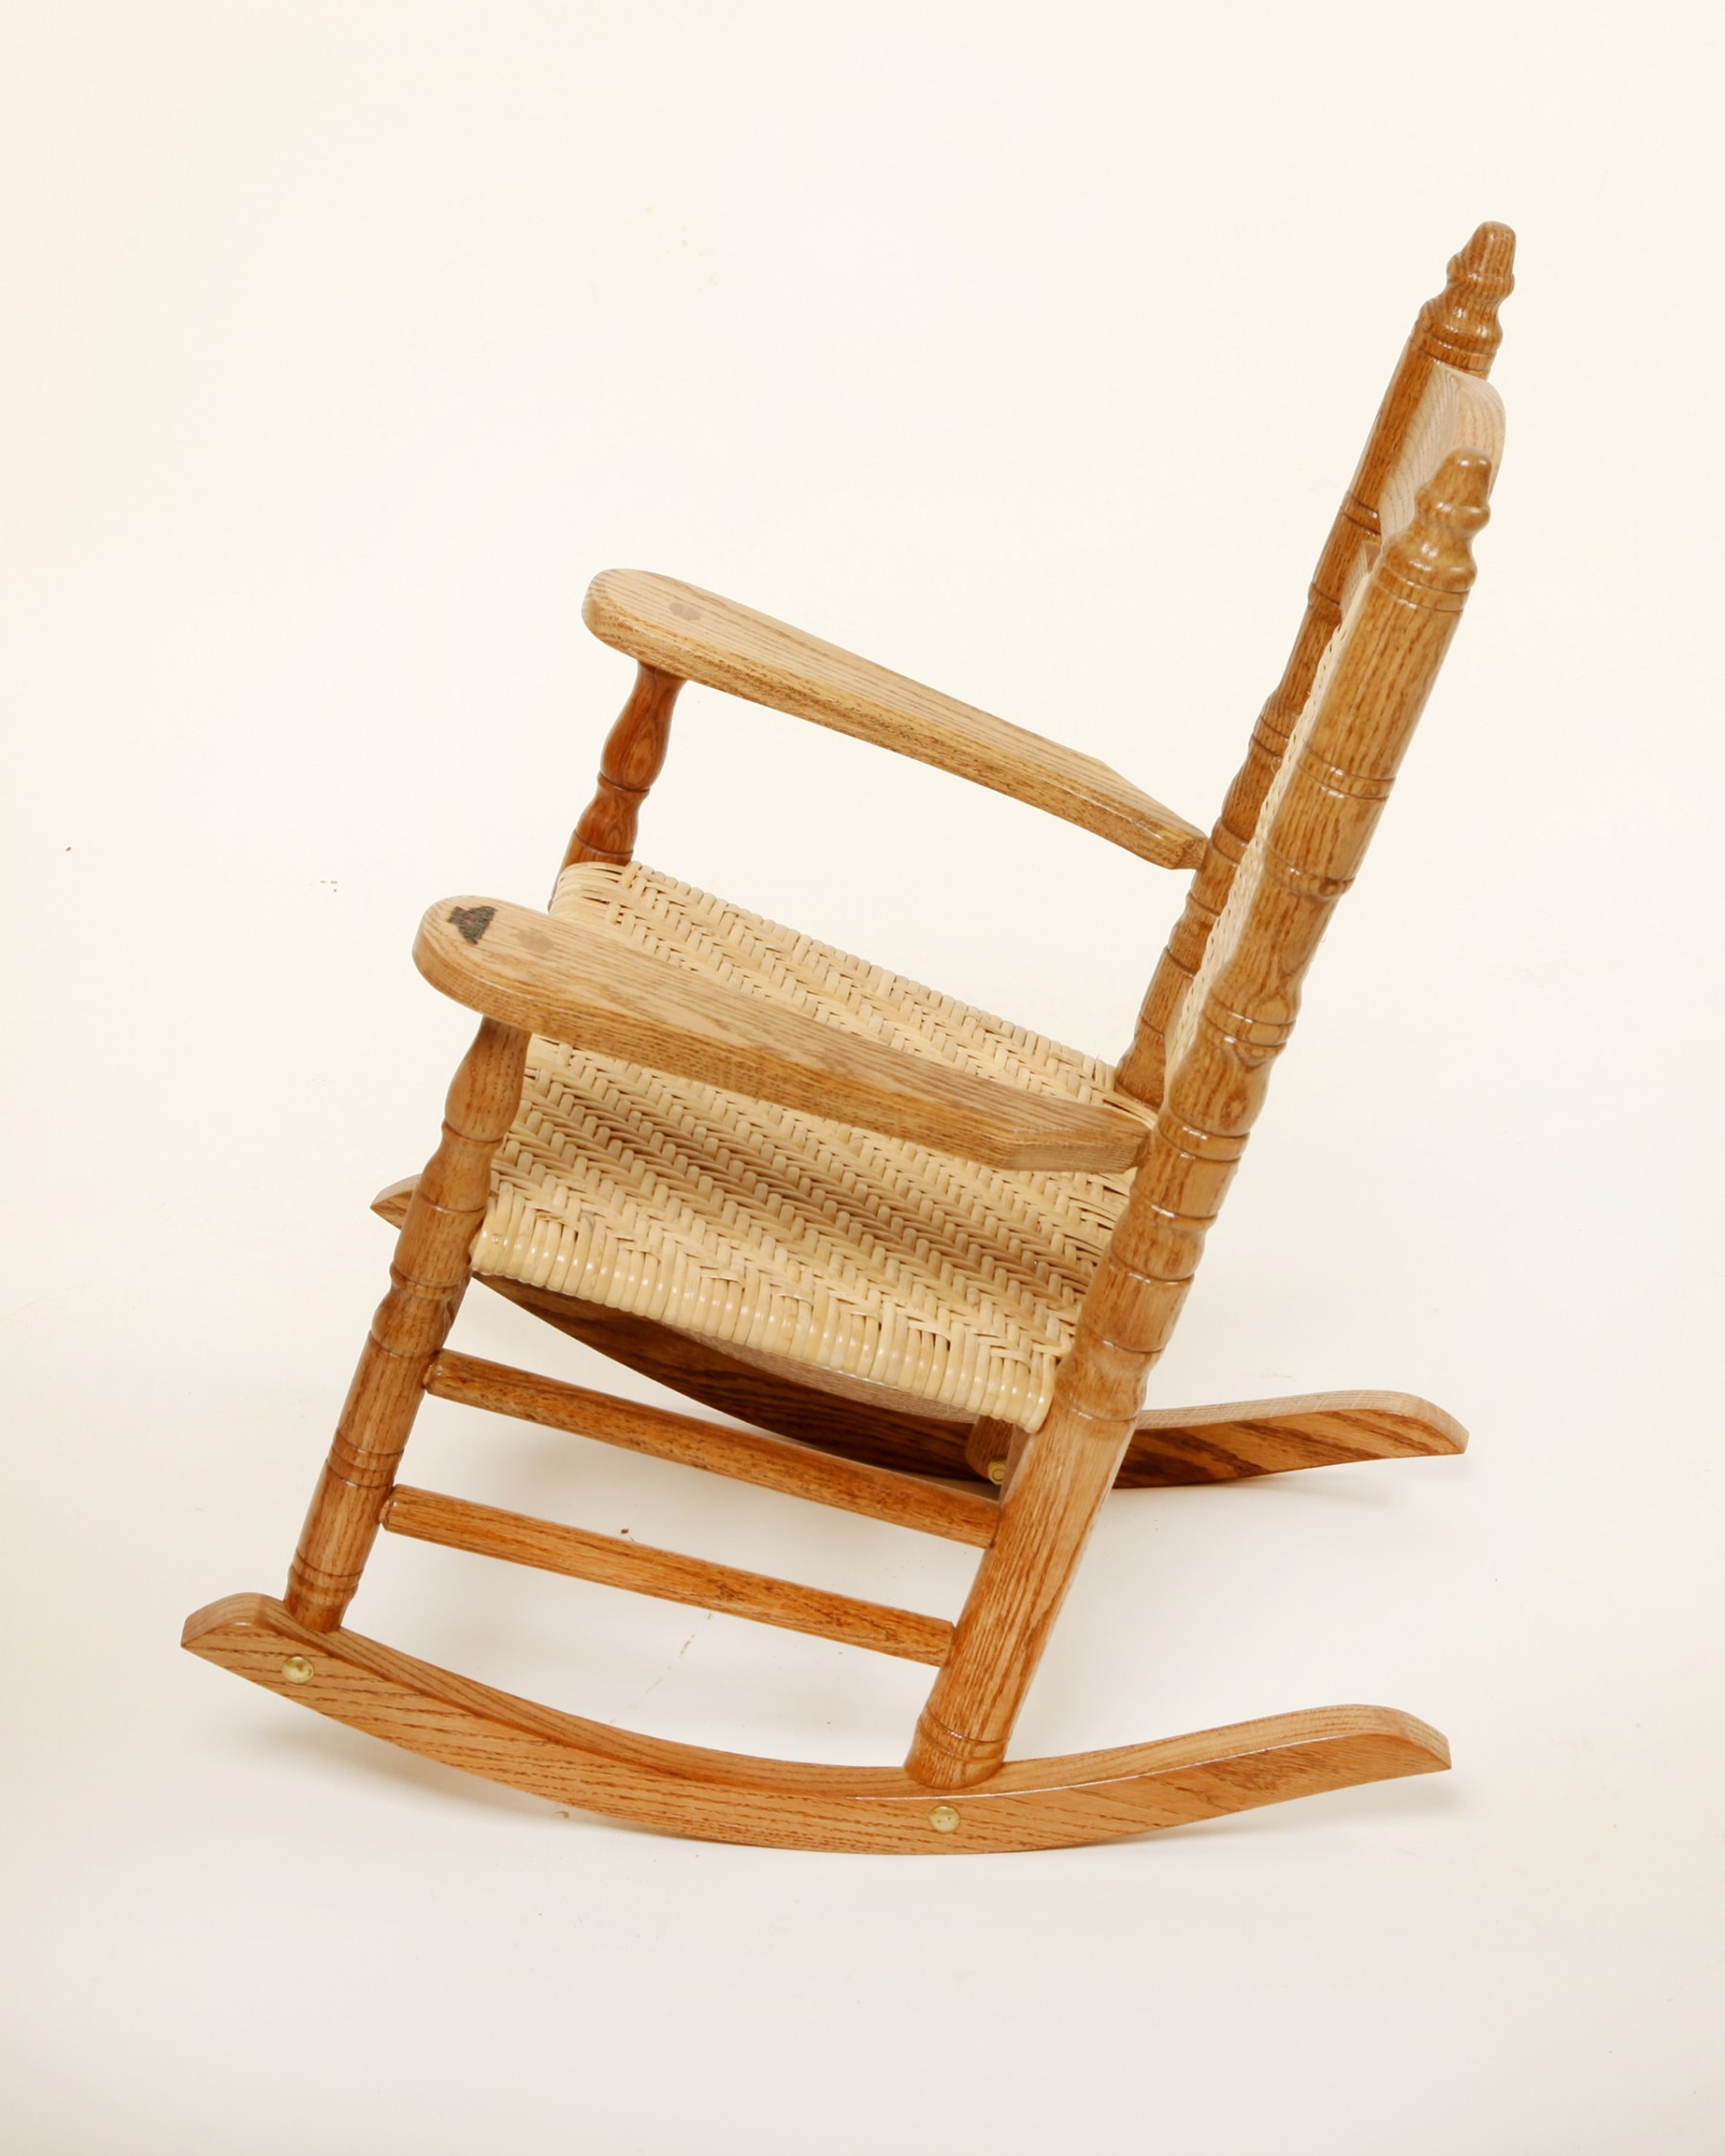 The Brumby Chair pany